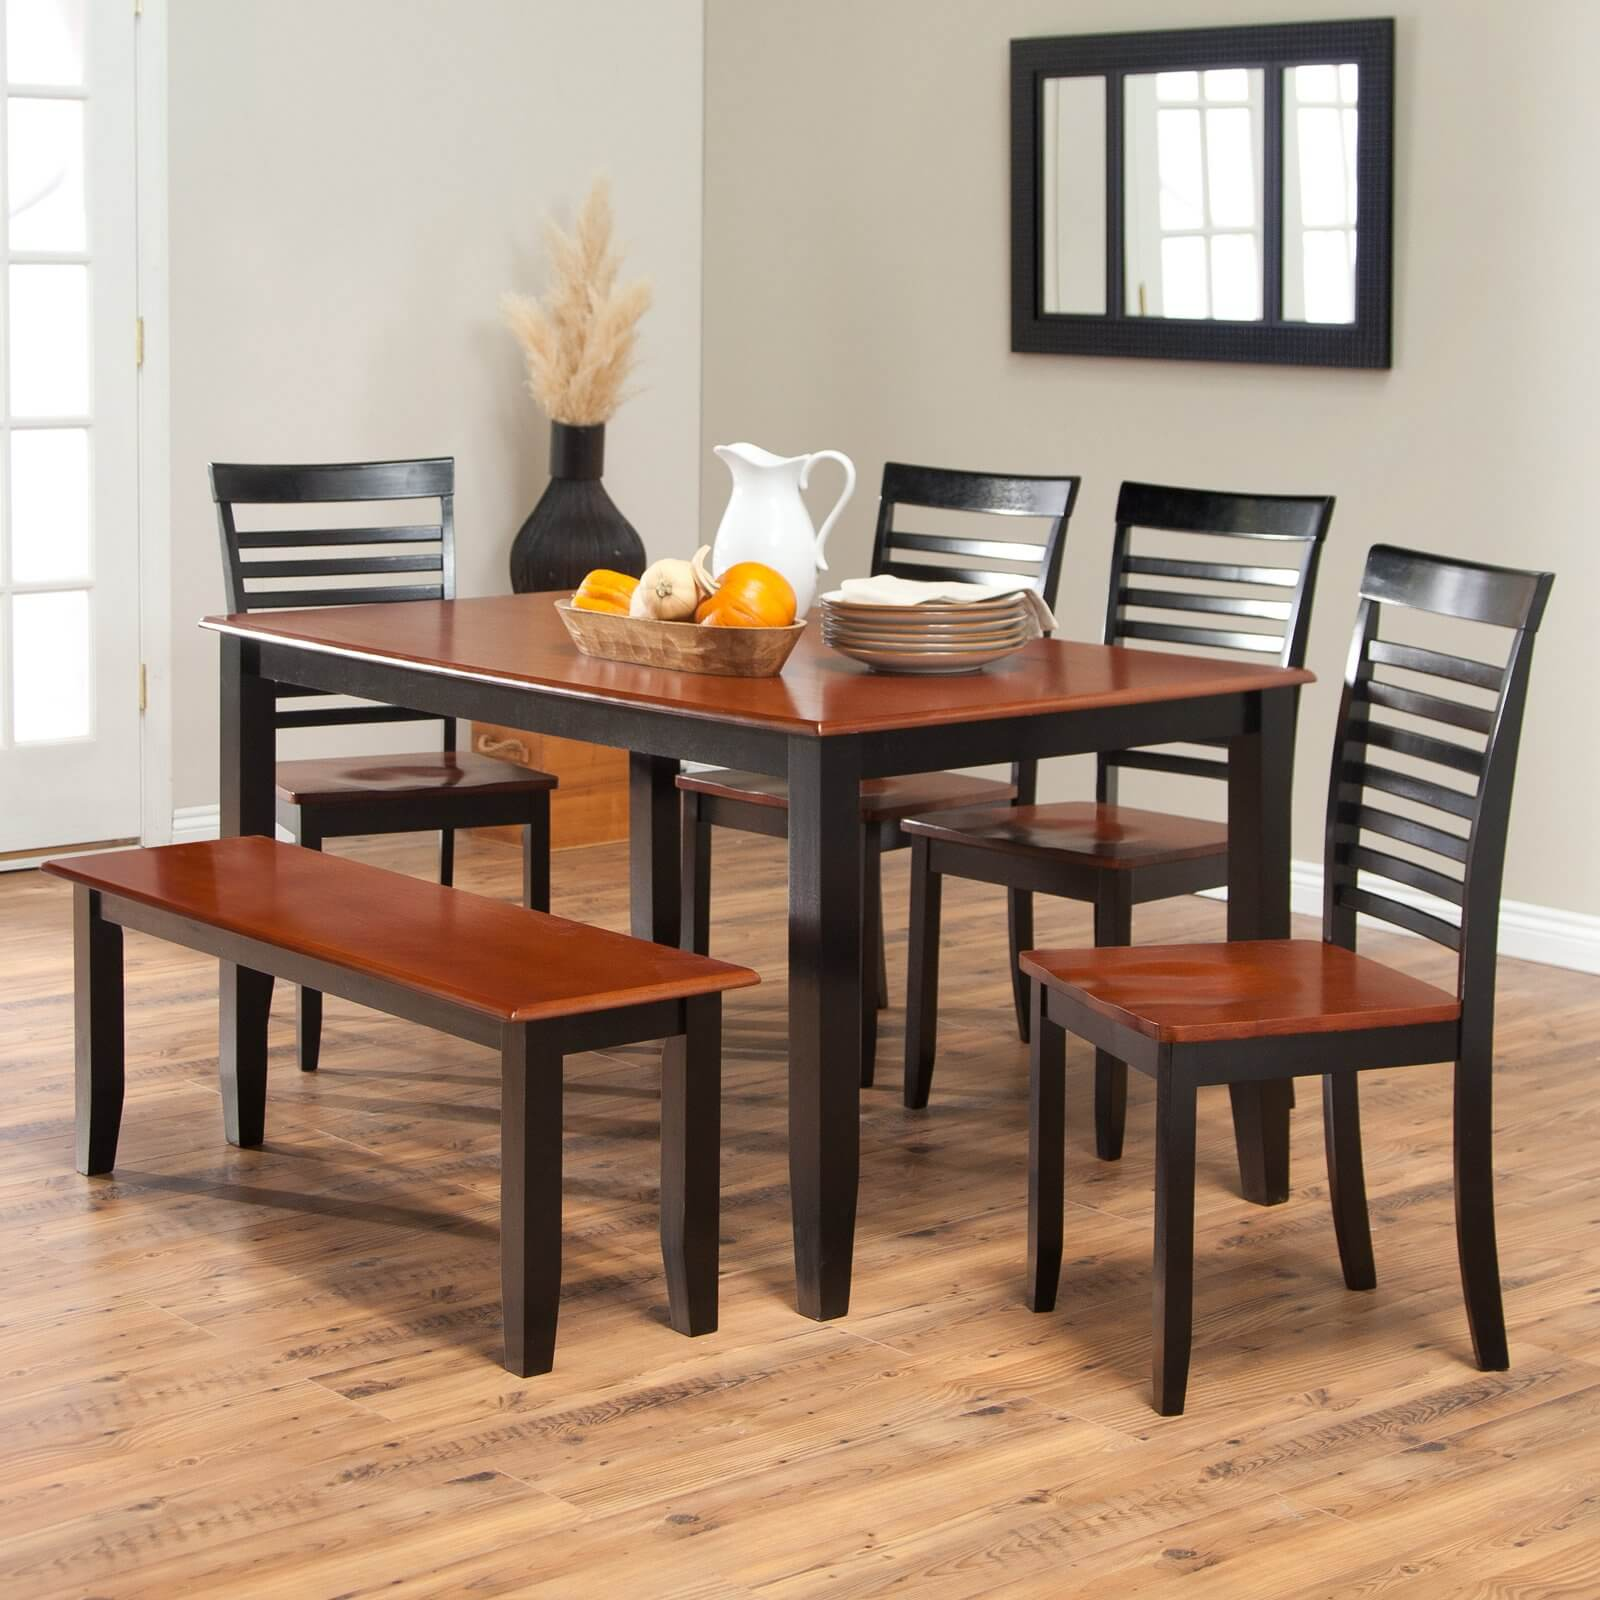 Simple Two Toned Dining Set With Bench. The Seats And Table Top Are Cherry Part 68